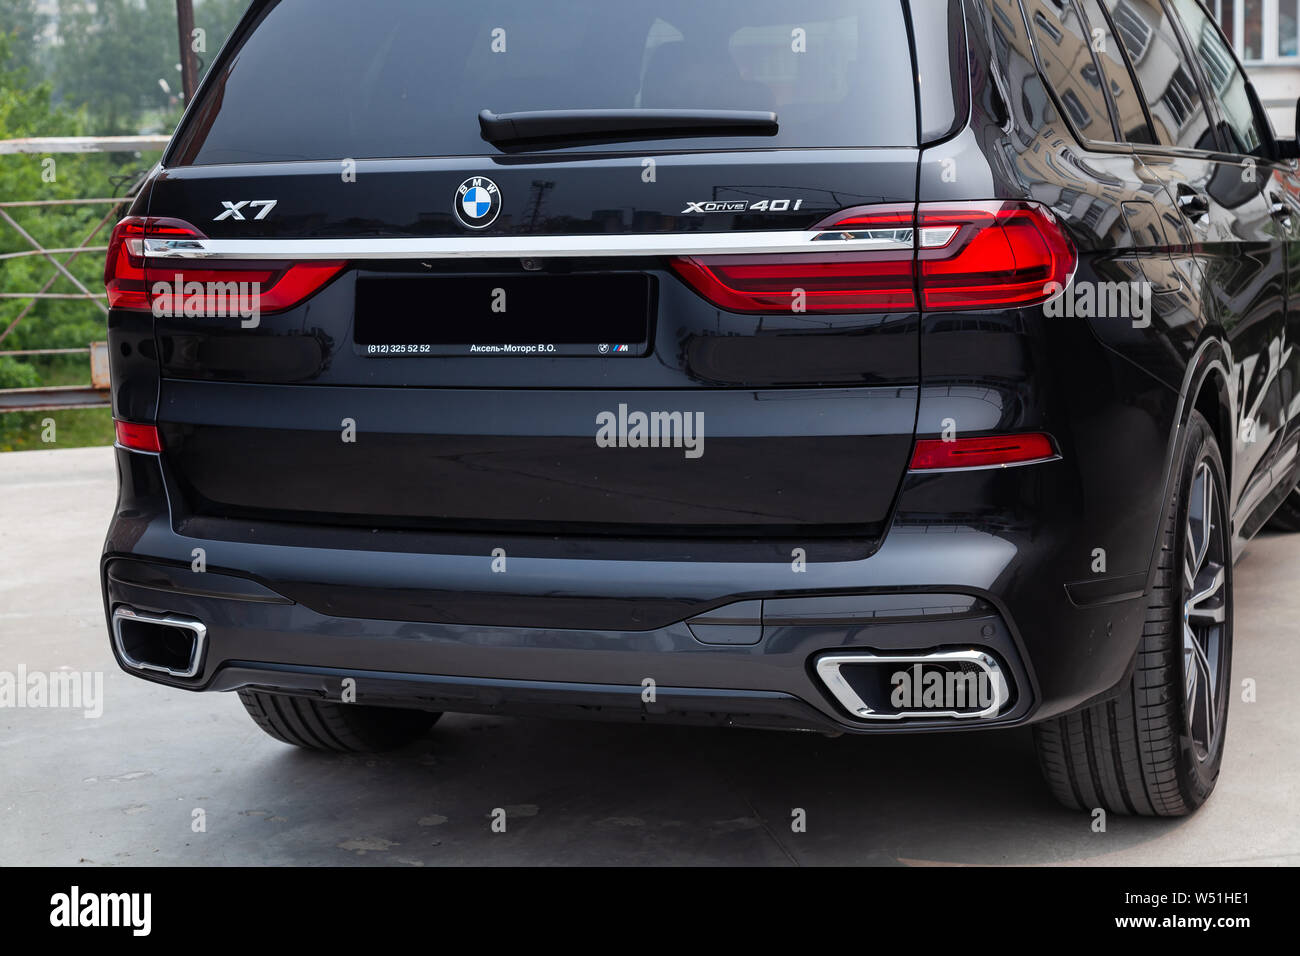 Novosibirsk Russia 07 20 2019 Black New Bmw X7 Xdrive40i 2019 Year Rear View With Lifht Gray Interior On Parking In The Street Stock Photo Alamy